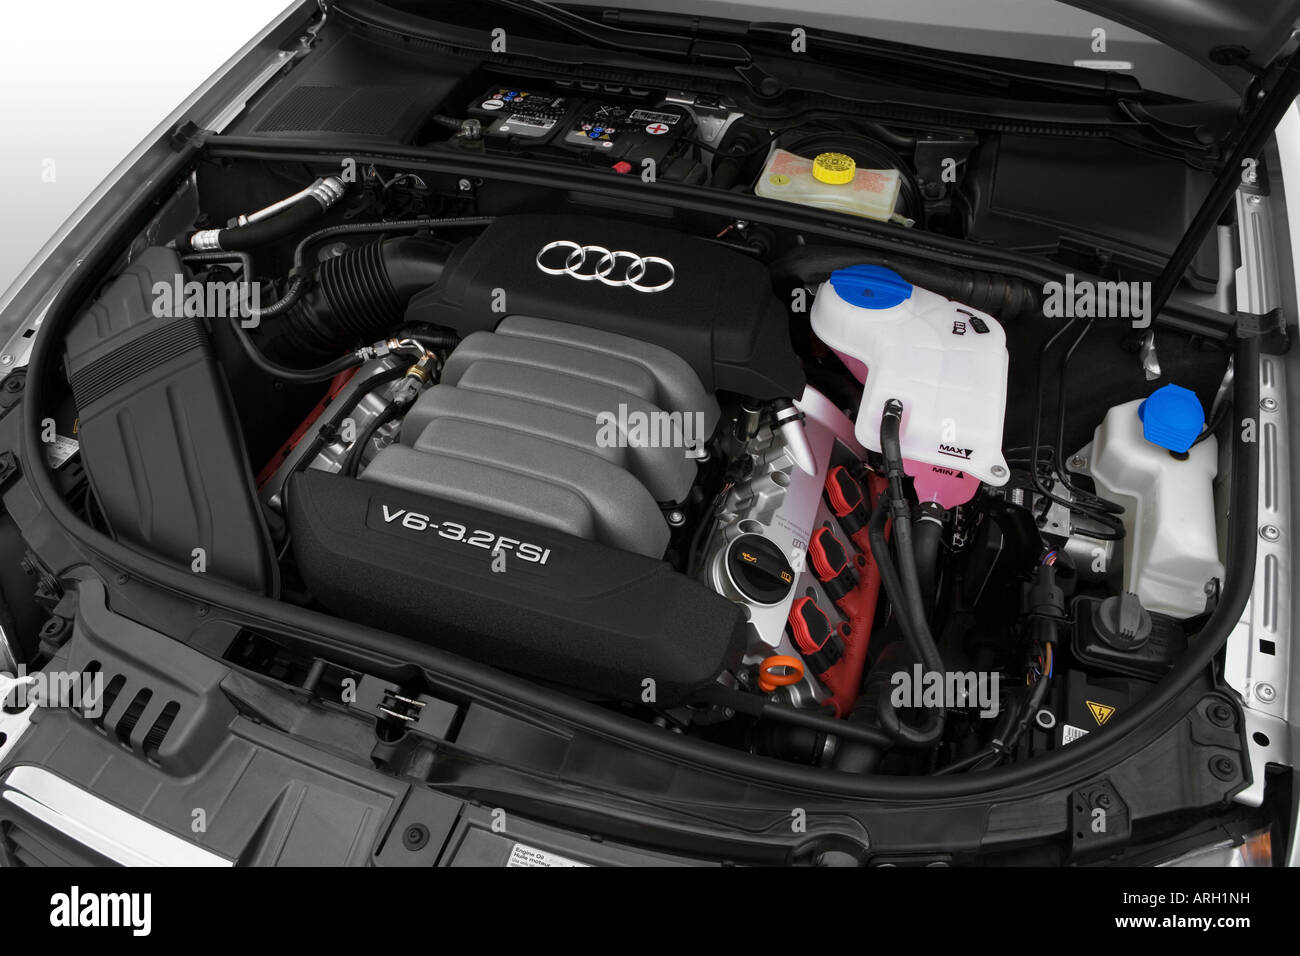 2007 audi a4 avant 3 2 quattro in silver engine stock photo 16053772 alamy. Black Bedroom Furniture Sets. Home Design Ideas